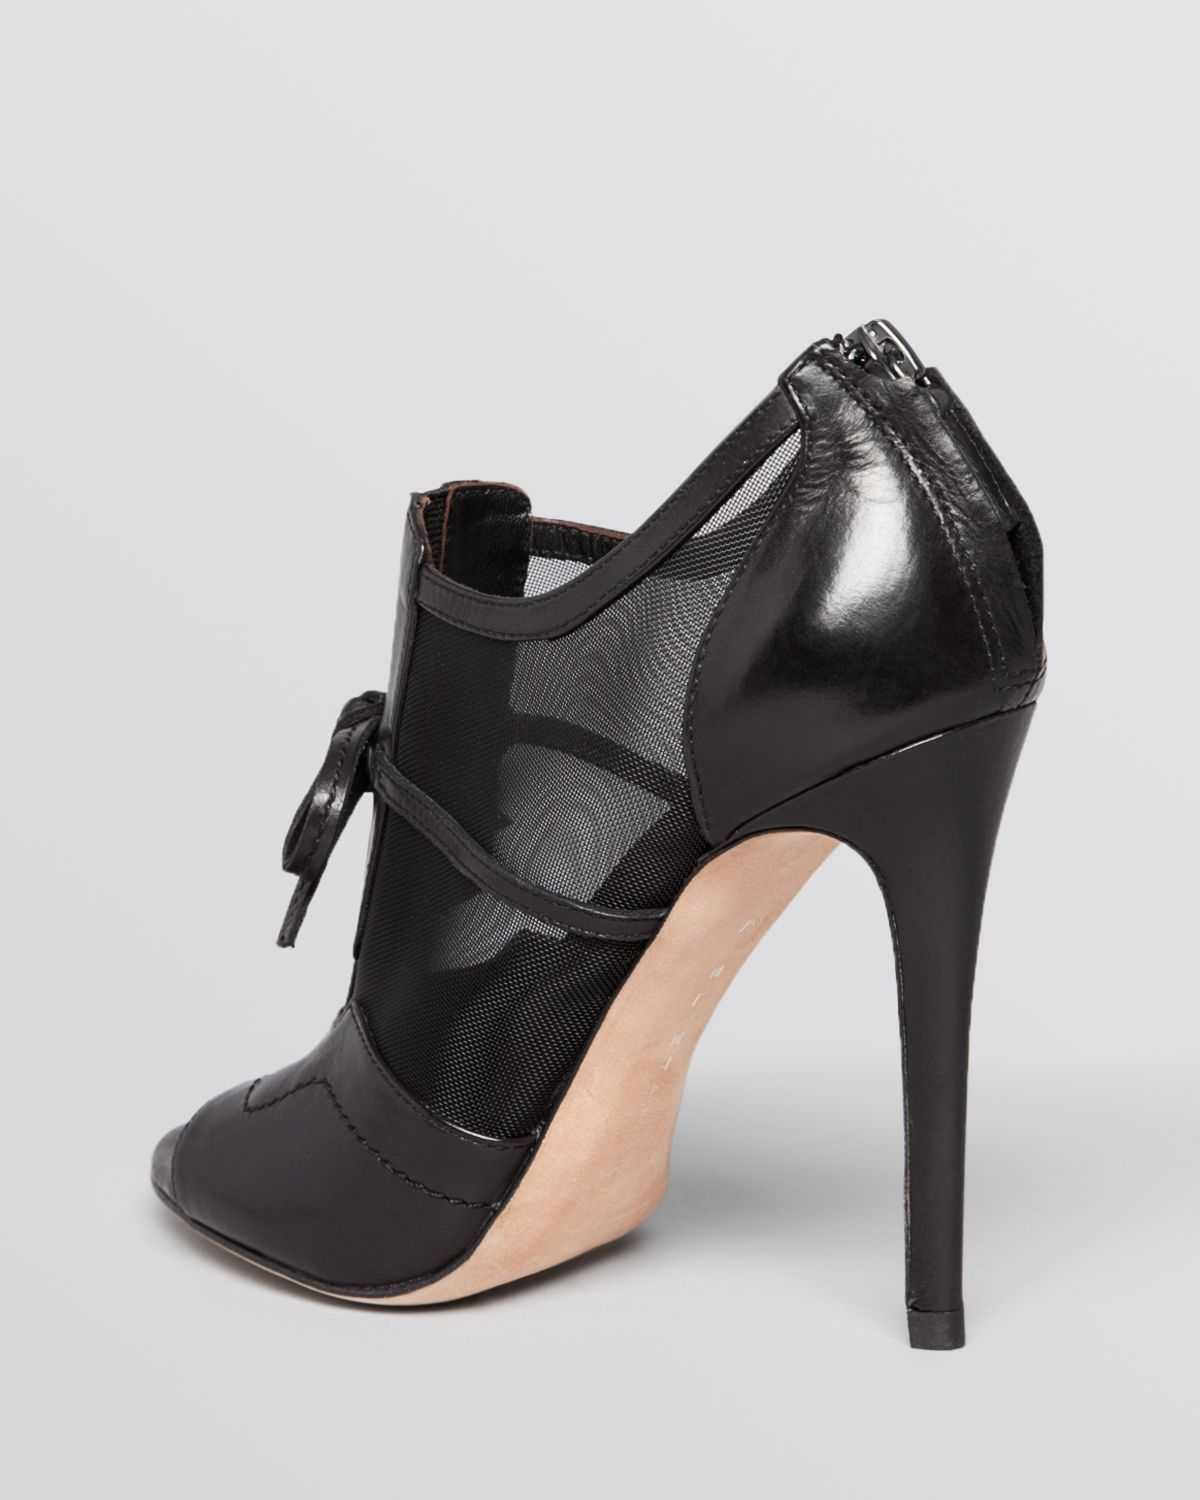 Shop Rainbow for trendy womens shoes at prices you'll love. Everyday free shipping & free returns to stores. Store Locator; Plus Size Black and White. Workwear. Womens Workwear. Plus Size Workwear. Sport. Womens Sport Trend. Rhinestone Cut Out High Heel Booties. Rhinestone Cut Out High Heel Booties $ Quick view - Ankle Strap High.